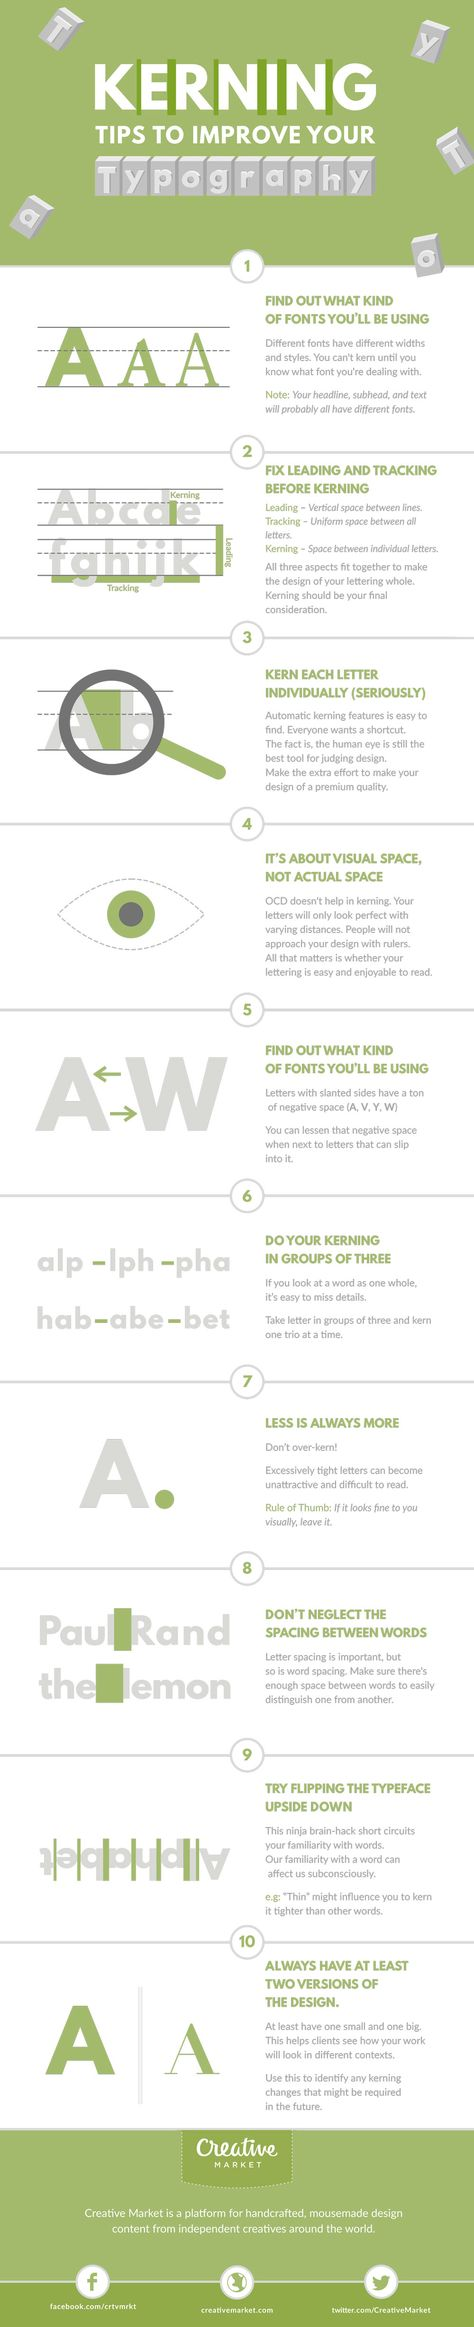 On the Creative Market Blog - Infographic: Kerning Tips to Improve Your Typography